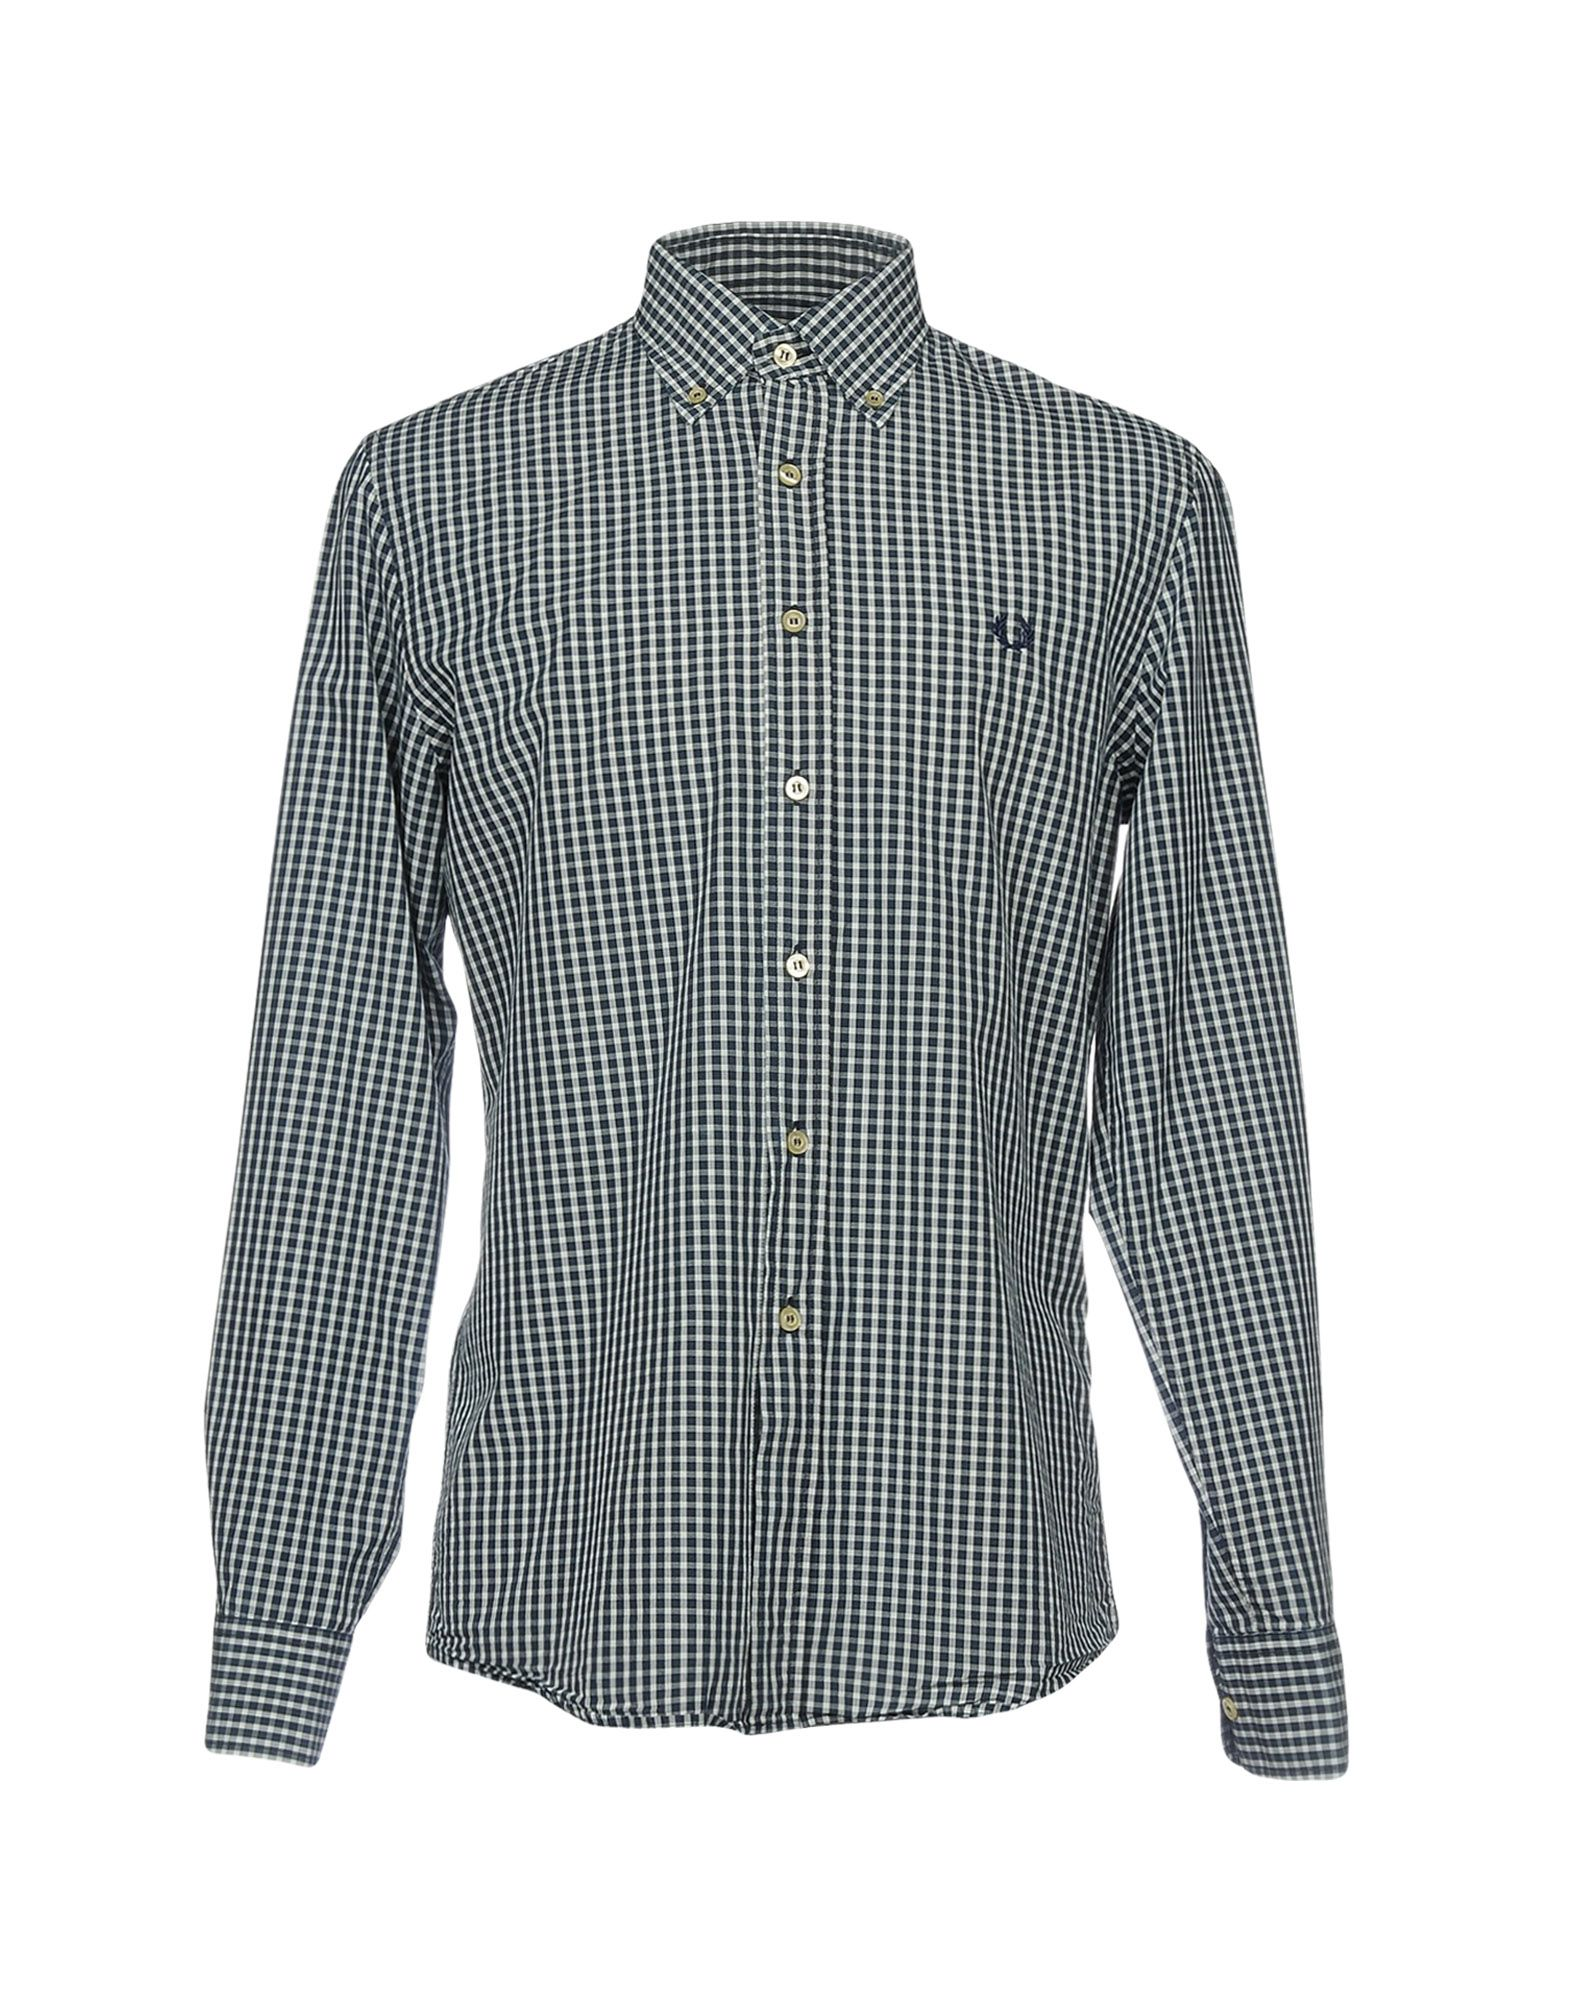 FRED PERRY Pубашка рубашка в клетку insight fred sonic weed green